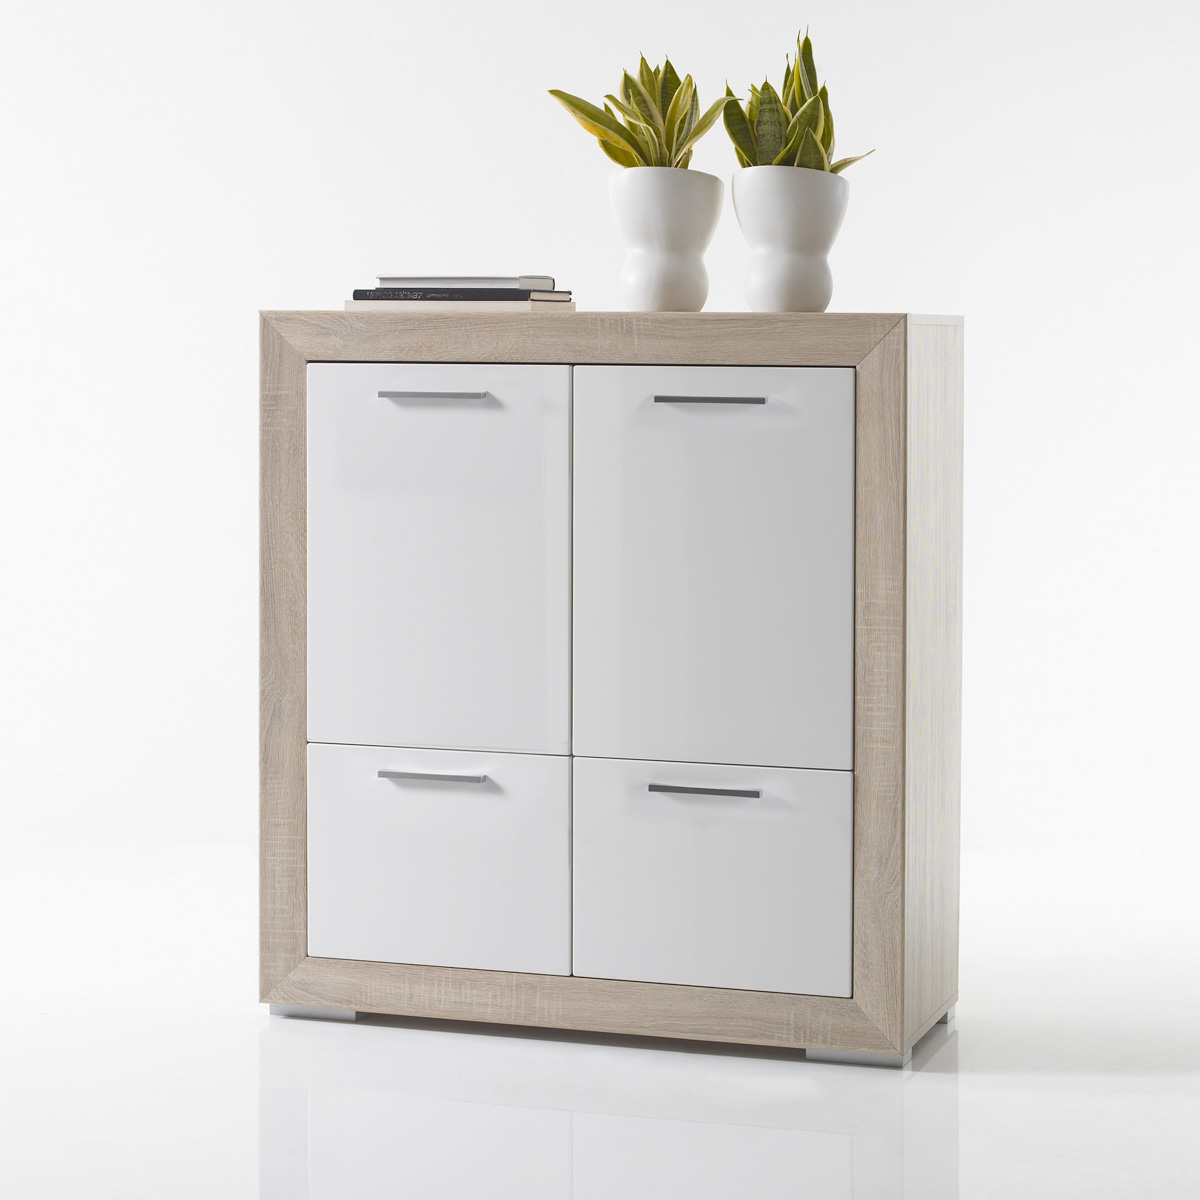 kommode fernando schrank sideboard in sonoma eiche wei hochglanz ebay. Black Bedroom Furniture Sets. Home Design Ideas